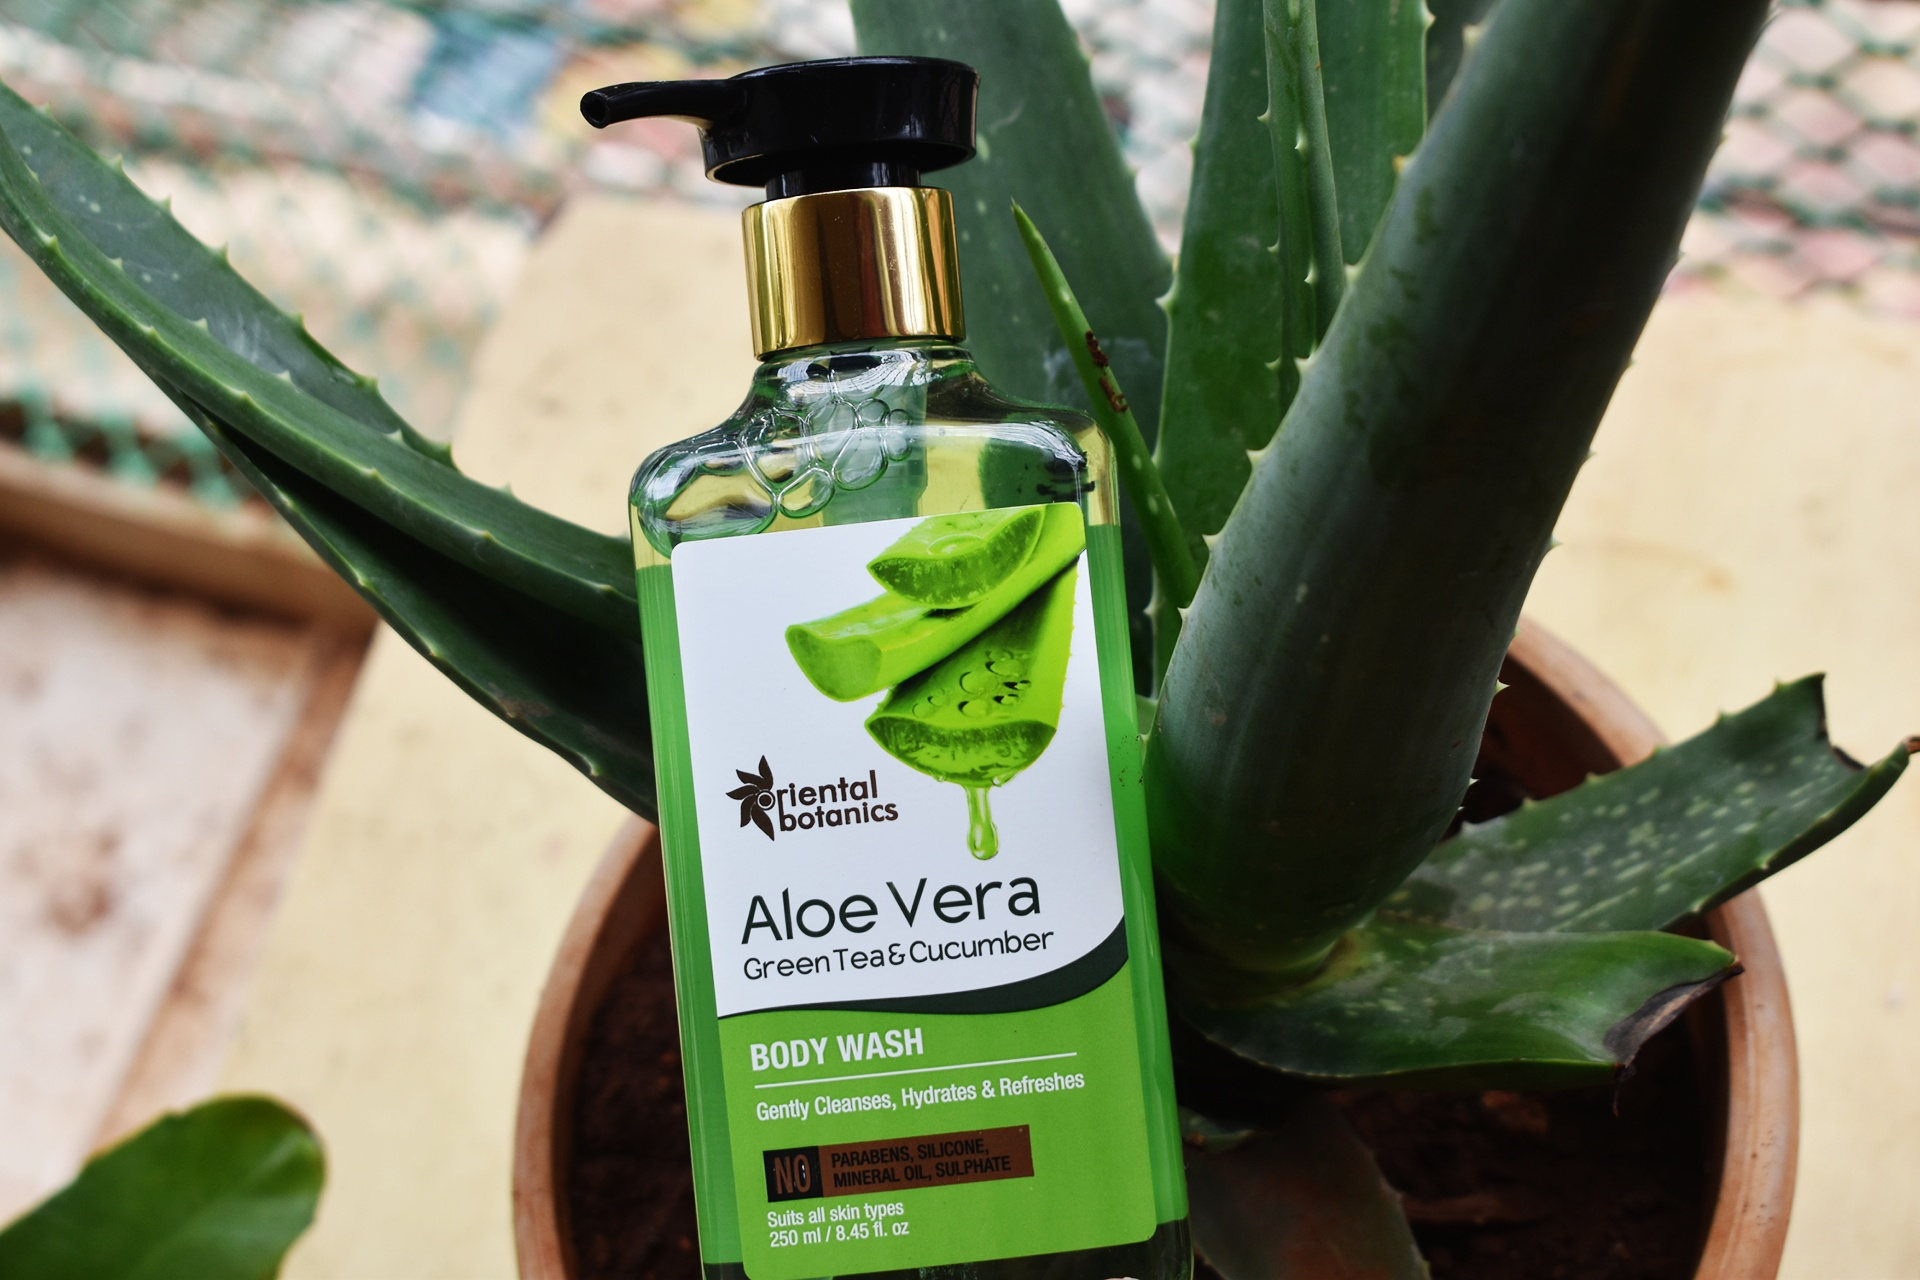 Oriental Botanics Aloe Vera Green Tea & Cucumber Body Wash-Best Aloe-Cucumber Duo-By thatkohlgirl-3